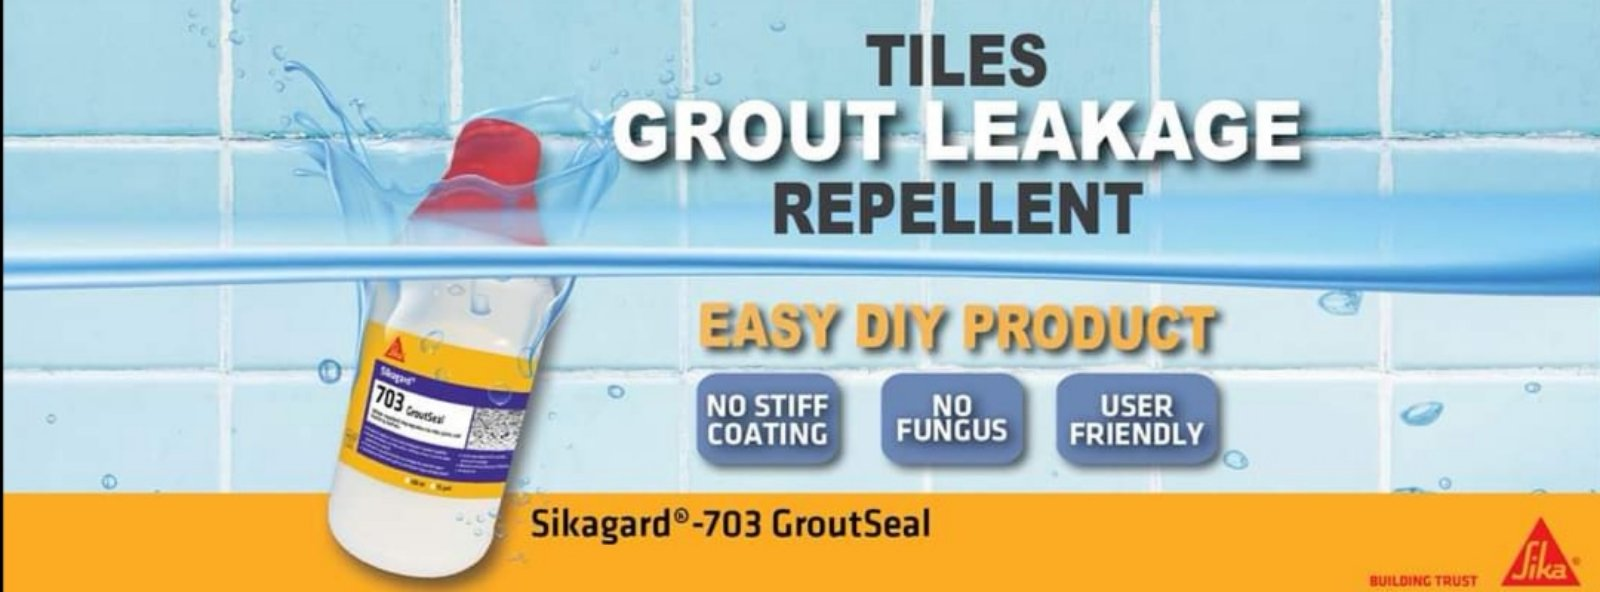 SIKA  tile grout repellant